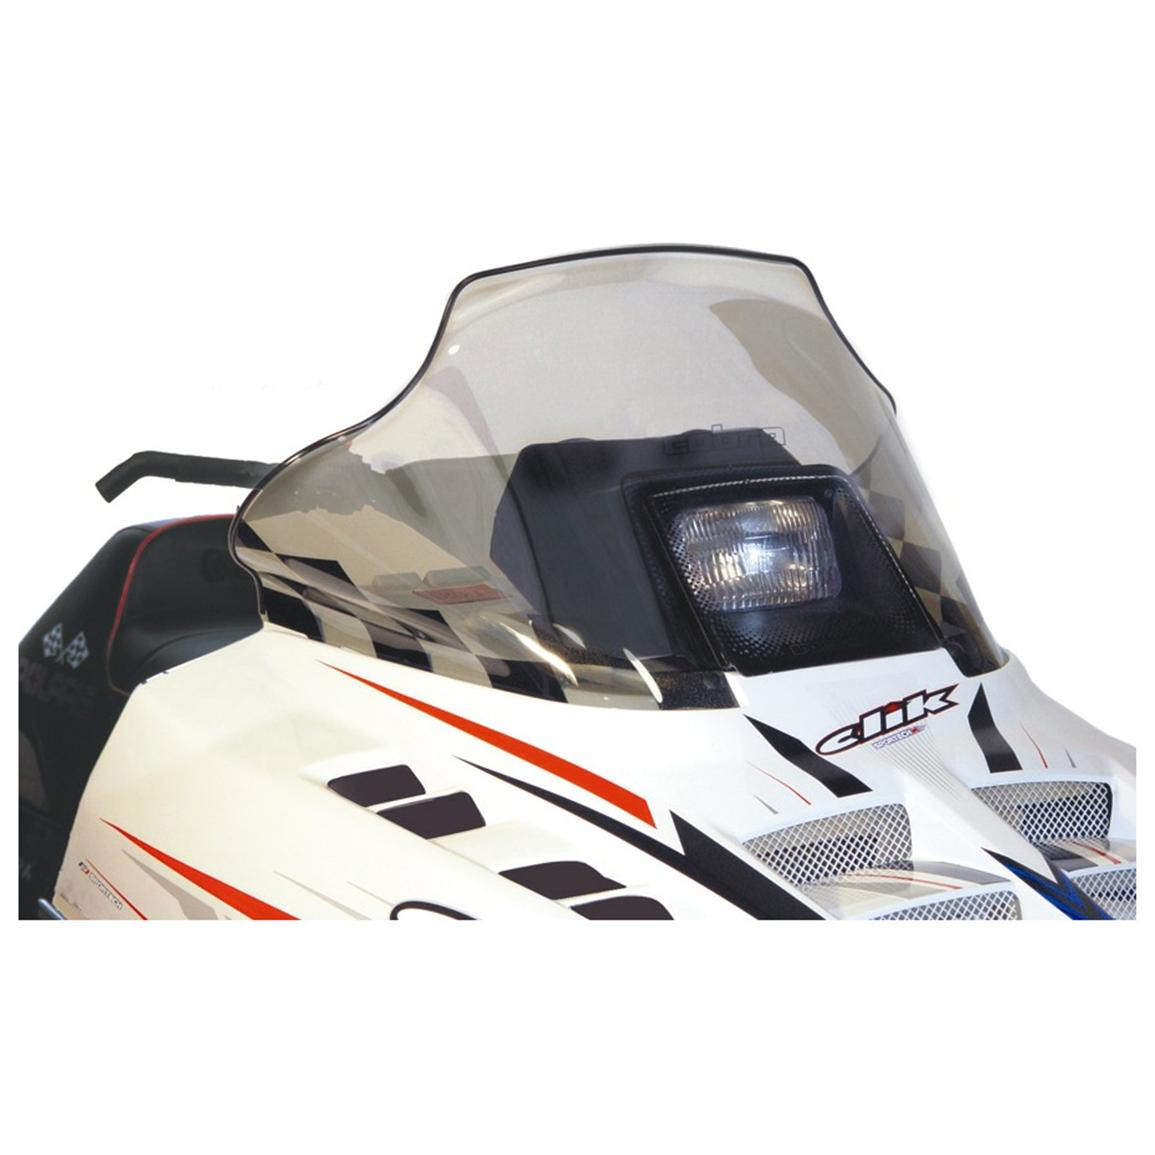 14 inch PowerMadd® Cobra Snowmobile Windshield for Polaris Indy Chassis, Tint with Black Checks